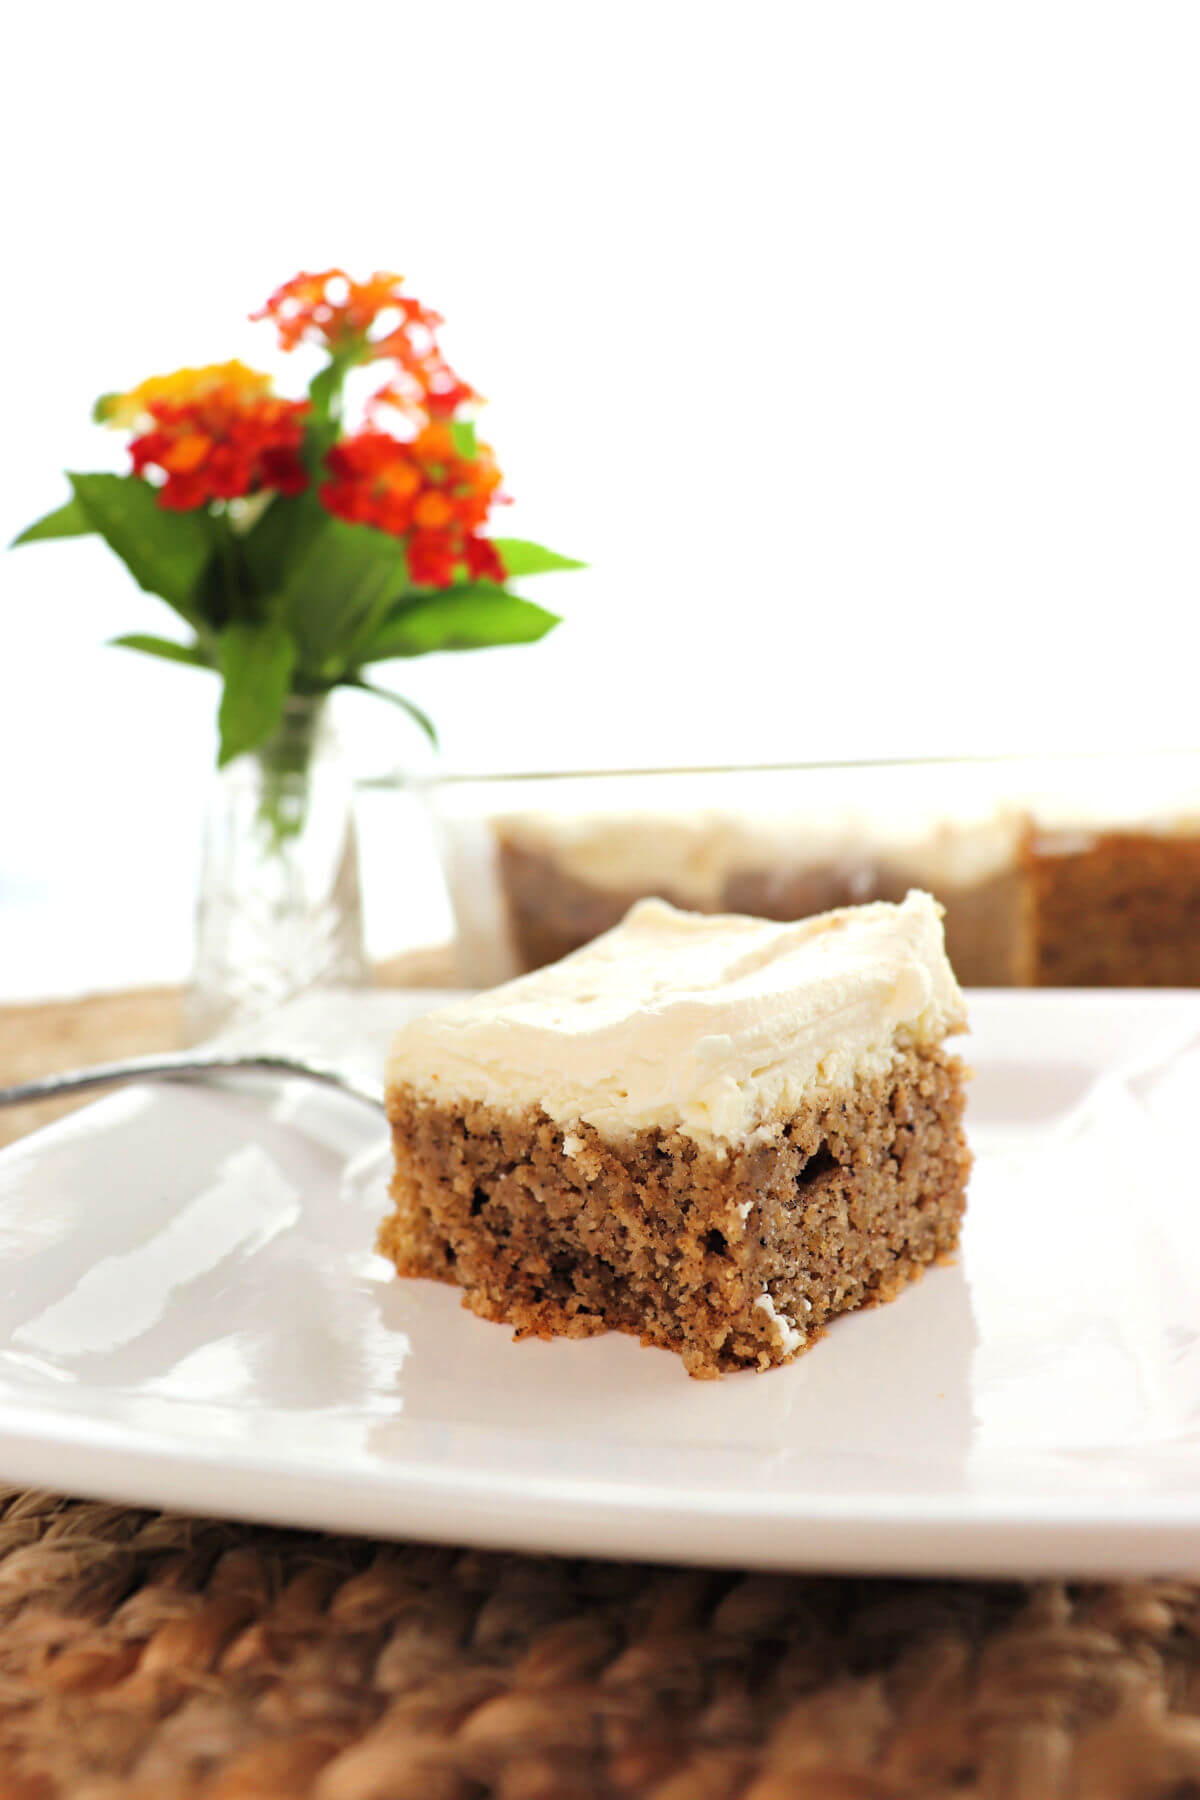 Low carb keto spice cake is packed with fall spice flavor with sugar-free and gluten-free cream cheese frosting. A delight for your tastebuds while in line with a keto diet. #ketocake #ketodesserts #lowcarbcakes